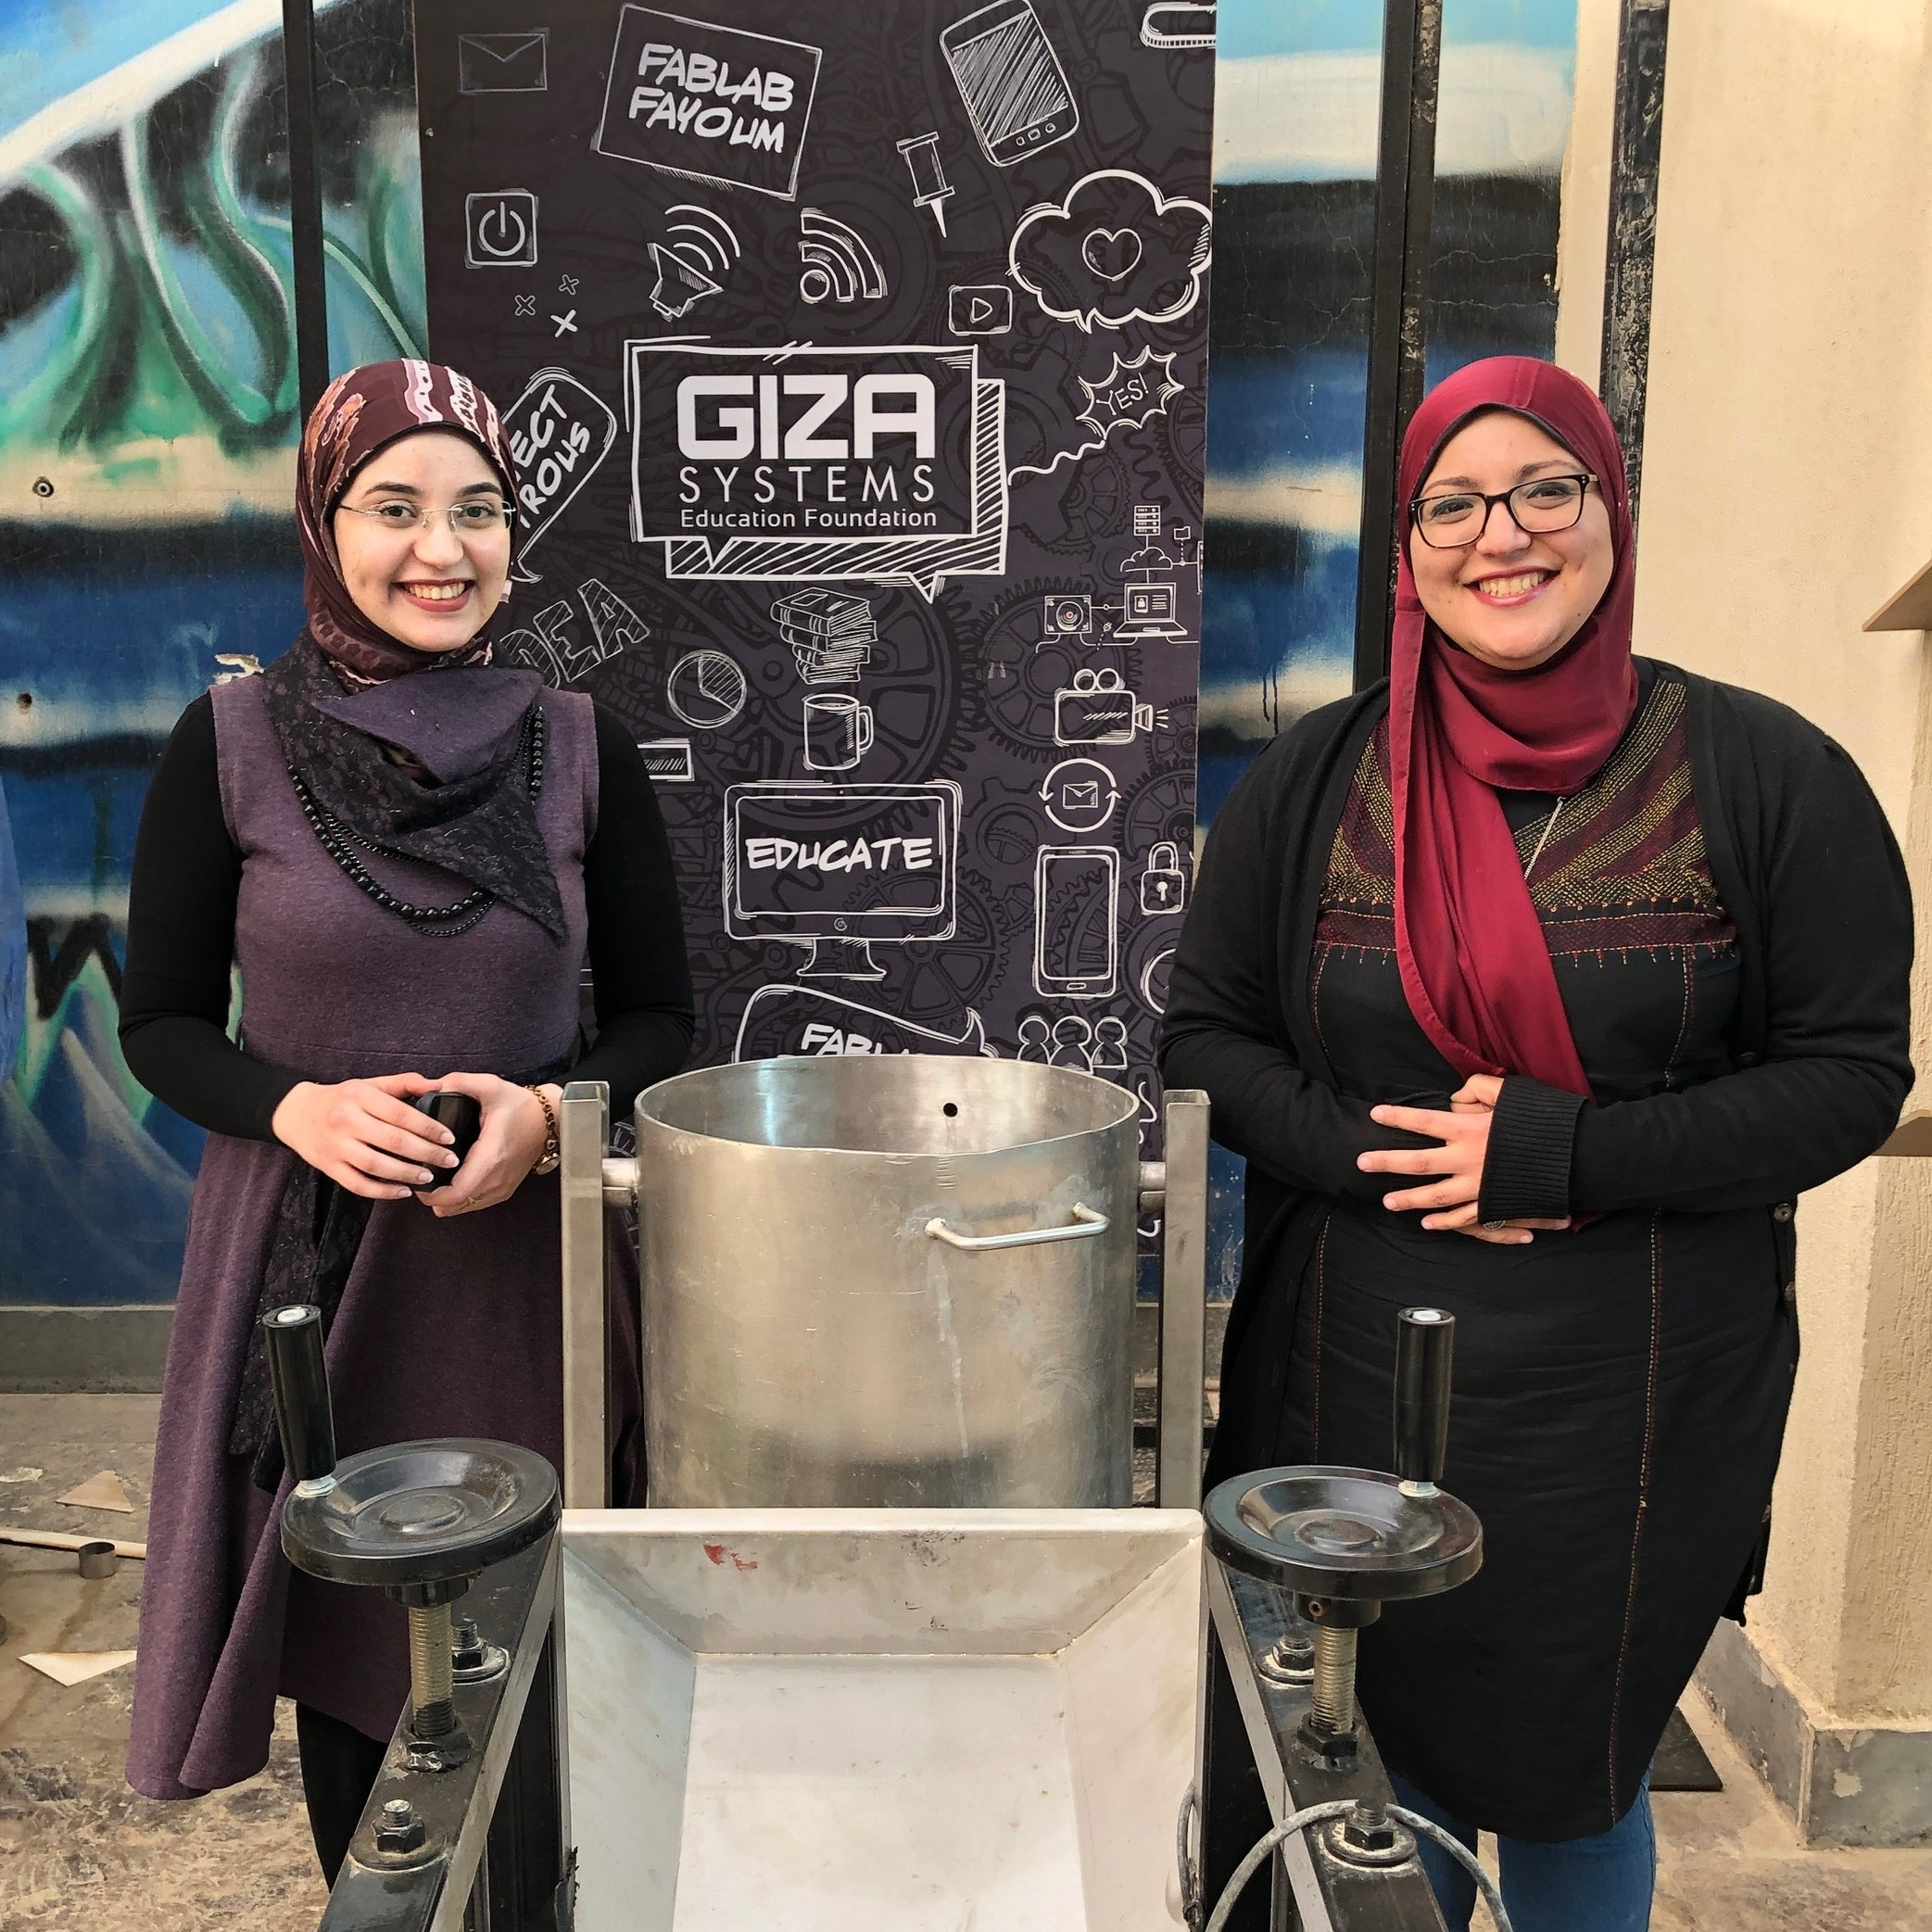 Makerspace Tour: Fab Lab New Cairo, Cairo